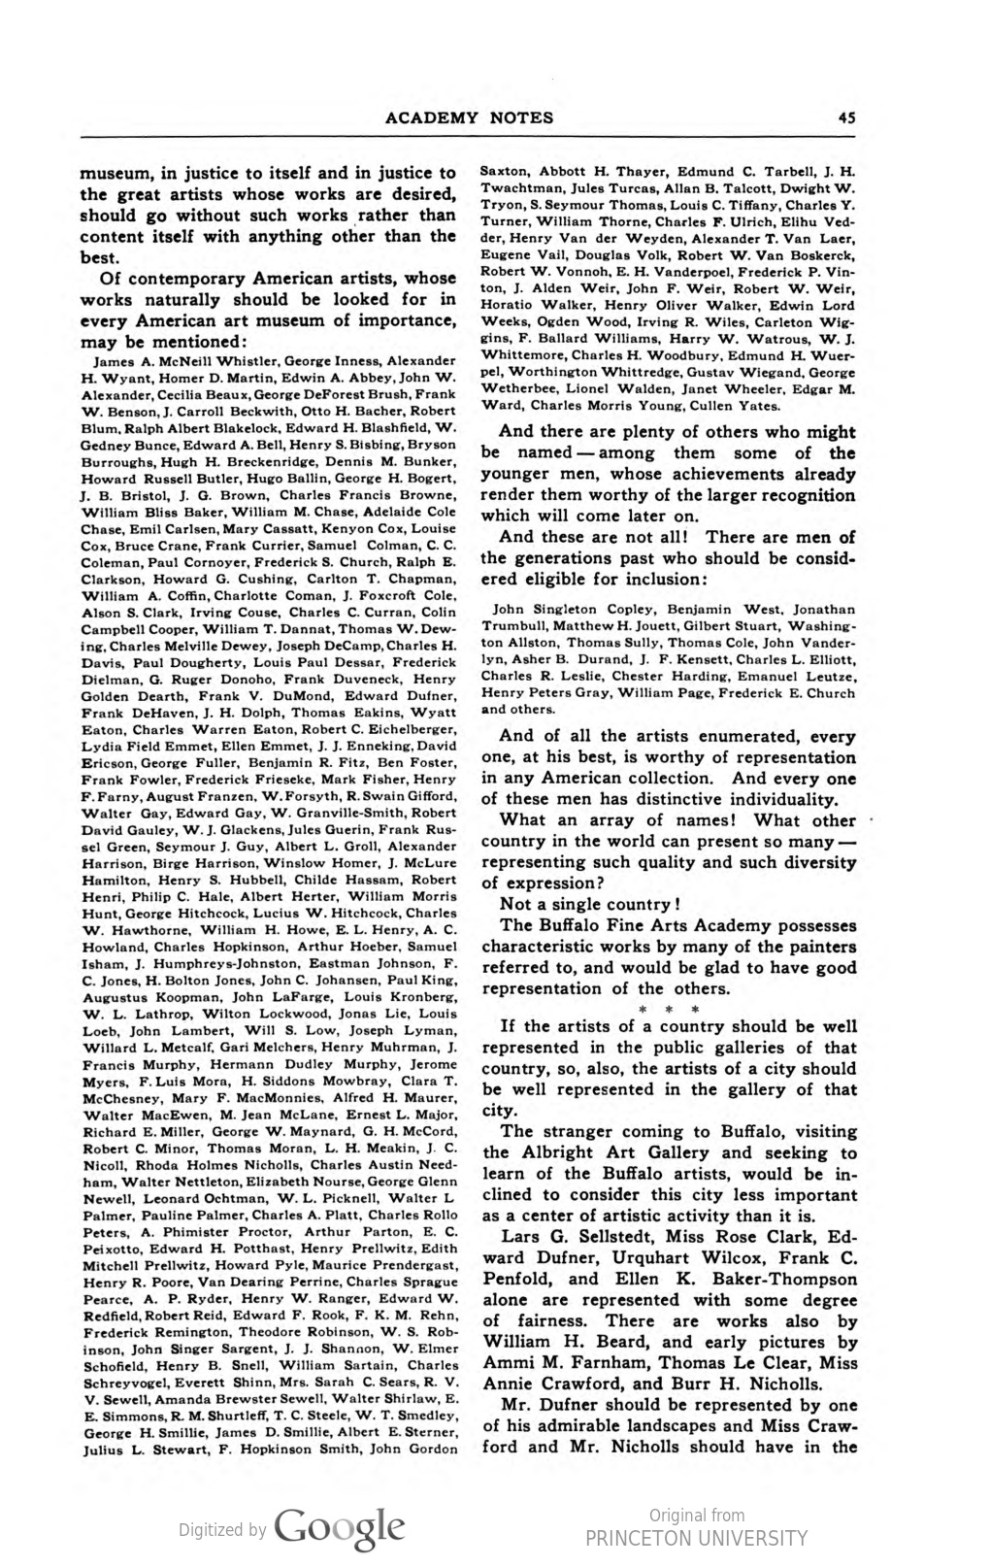 "Academy Notes, Buffalo Fine Arts Academy, Albright Art Gallery, Buffalo, NY, ""Second Annual Exhibition Selected American Paintings at the Albright Art Gallery Second Paper"", August, 1907, Volume 3, Number 3, page 44-46, not illustrated"